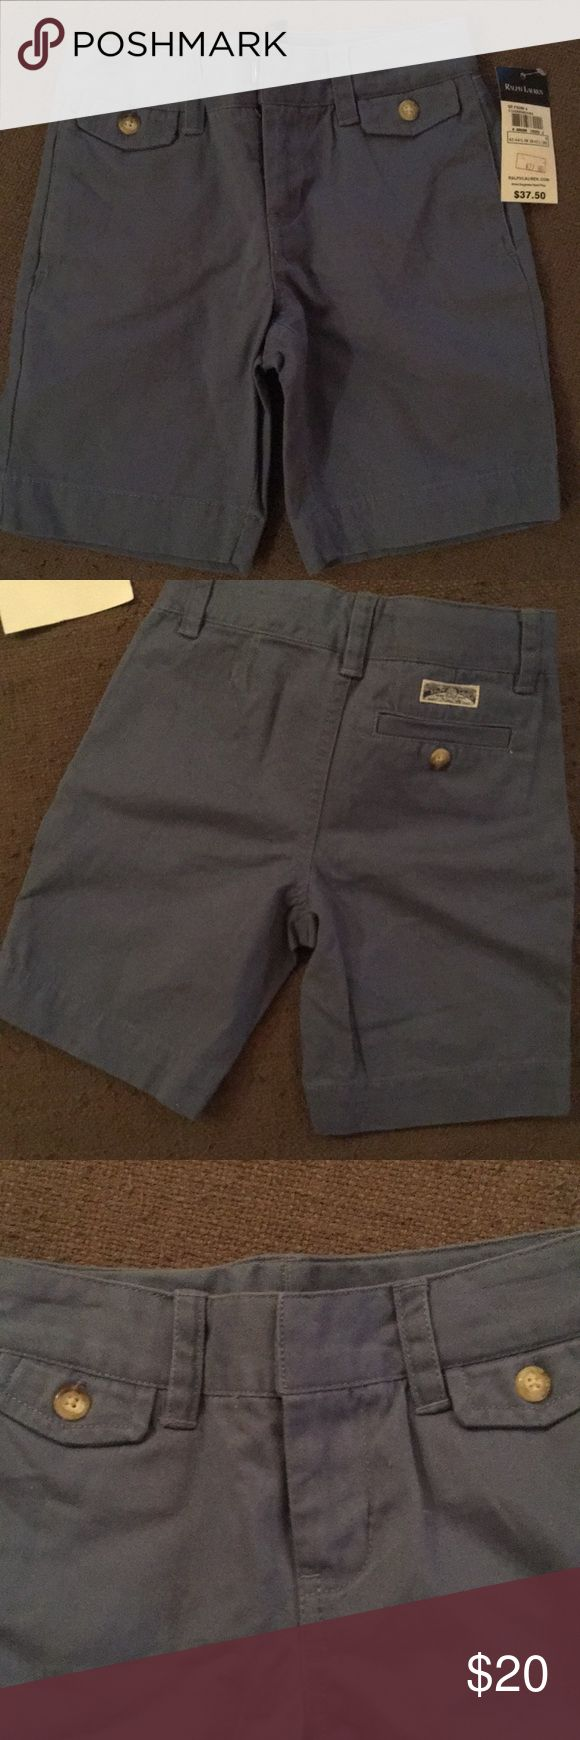 Ralph Lauren Girls Bermuda Shorts Size 5 Summer chic blue Bermuda shorts Ralph Lauren Bottoms Shorts